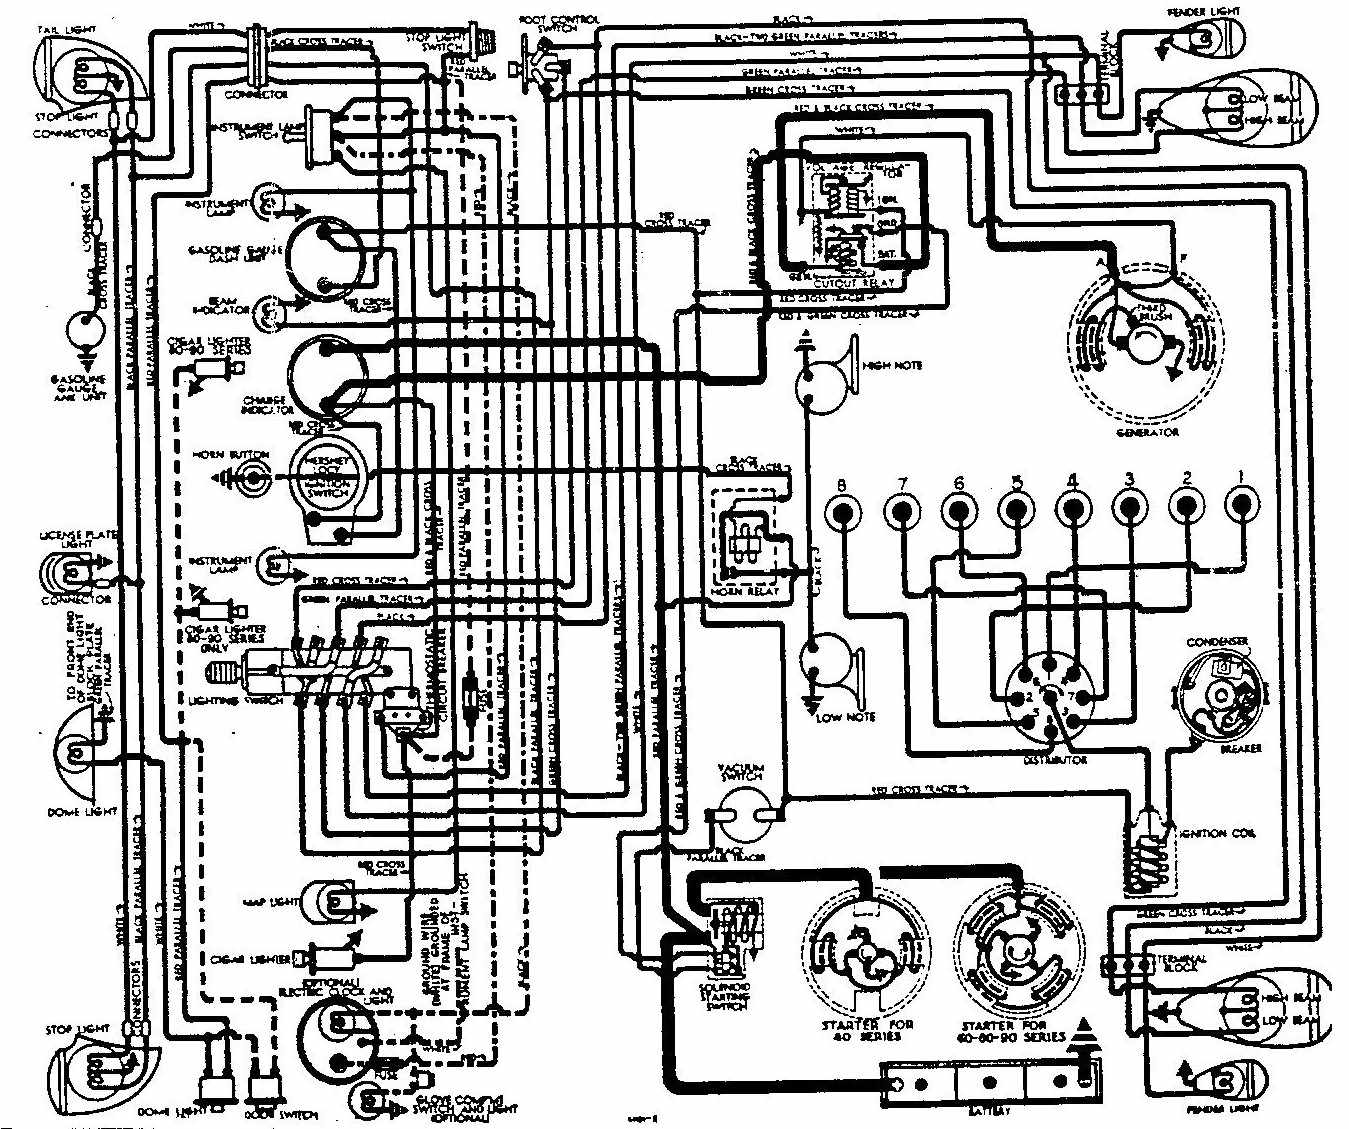 Fortable new holland tractor wiring diagram contemporary new holland ford 4600 wiring diagrams